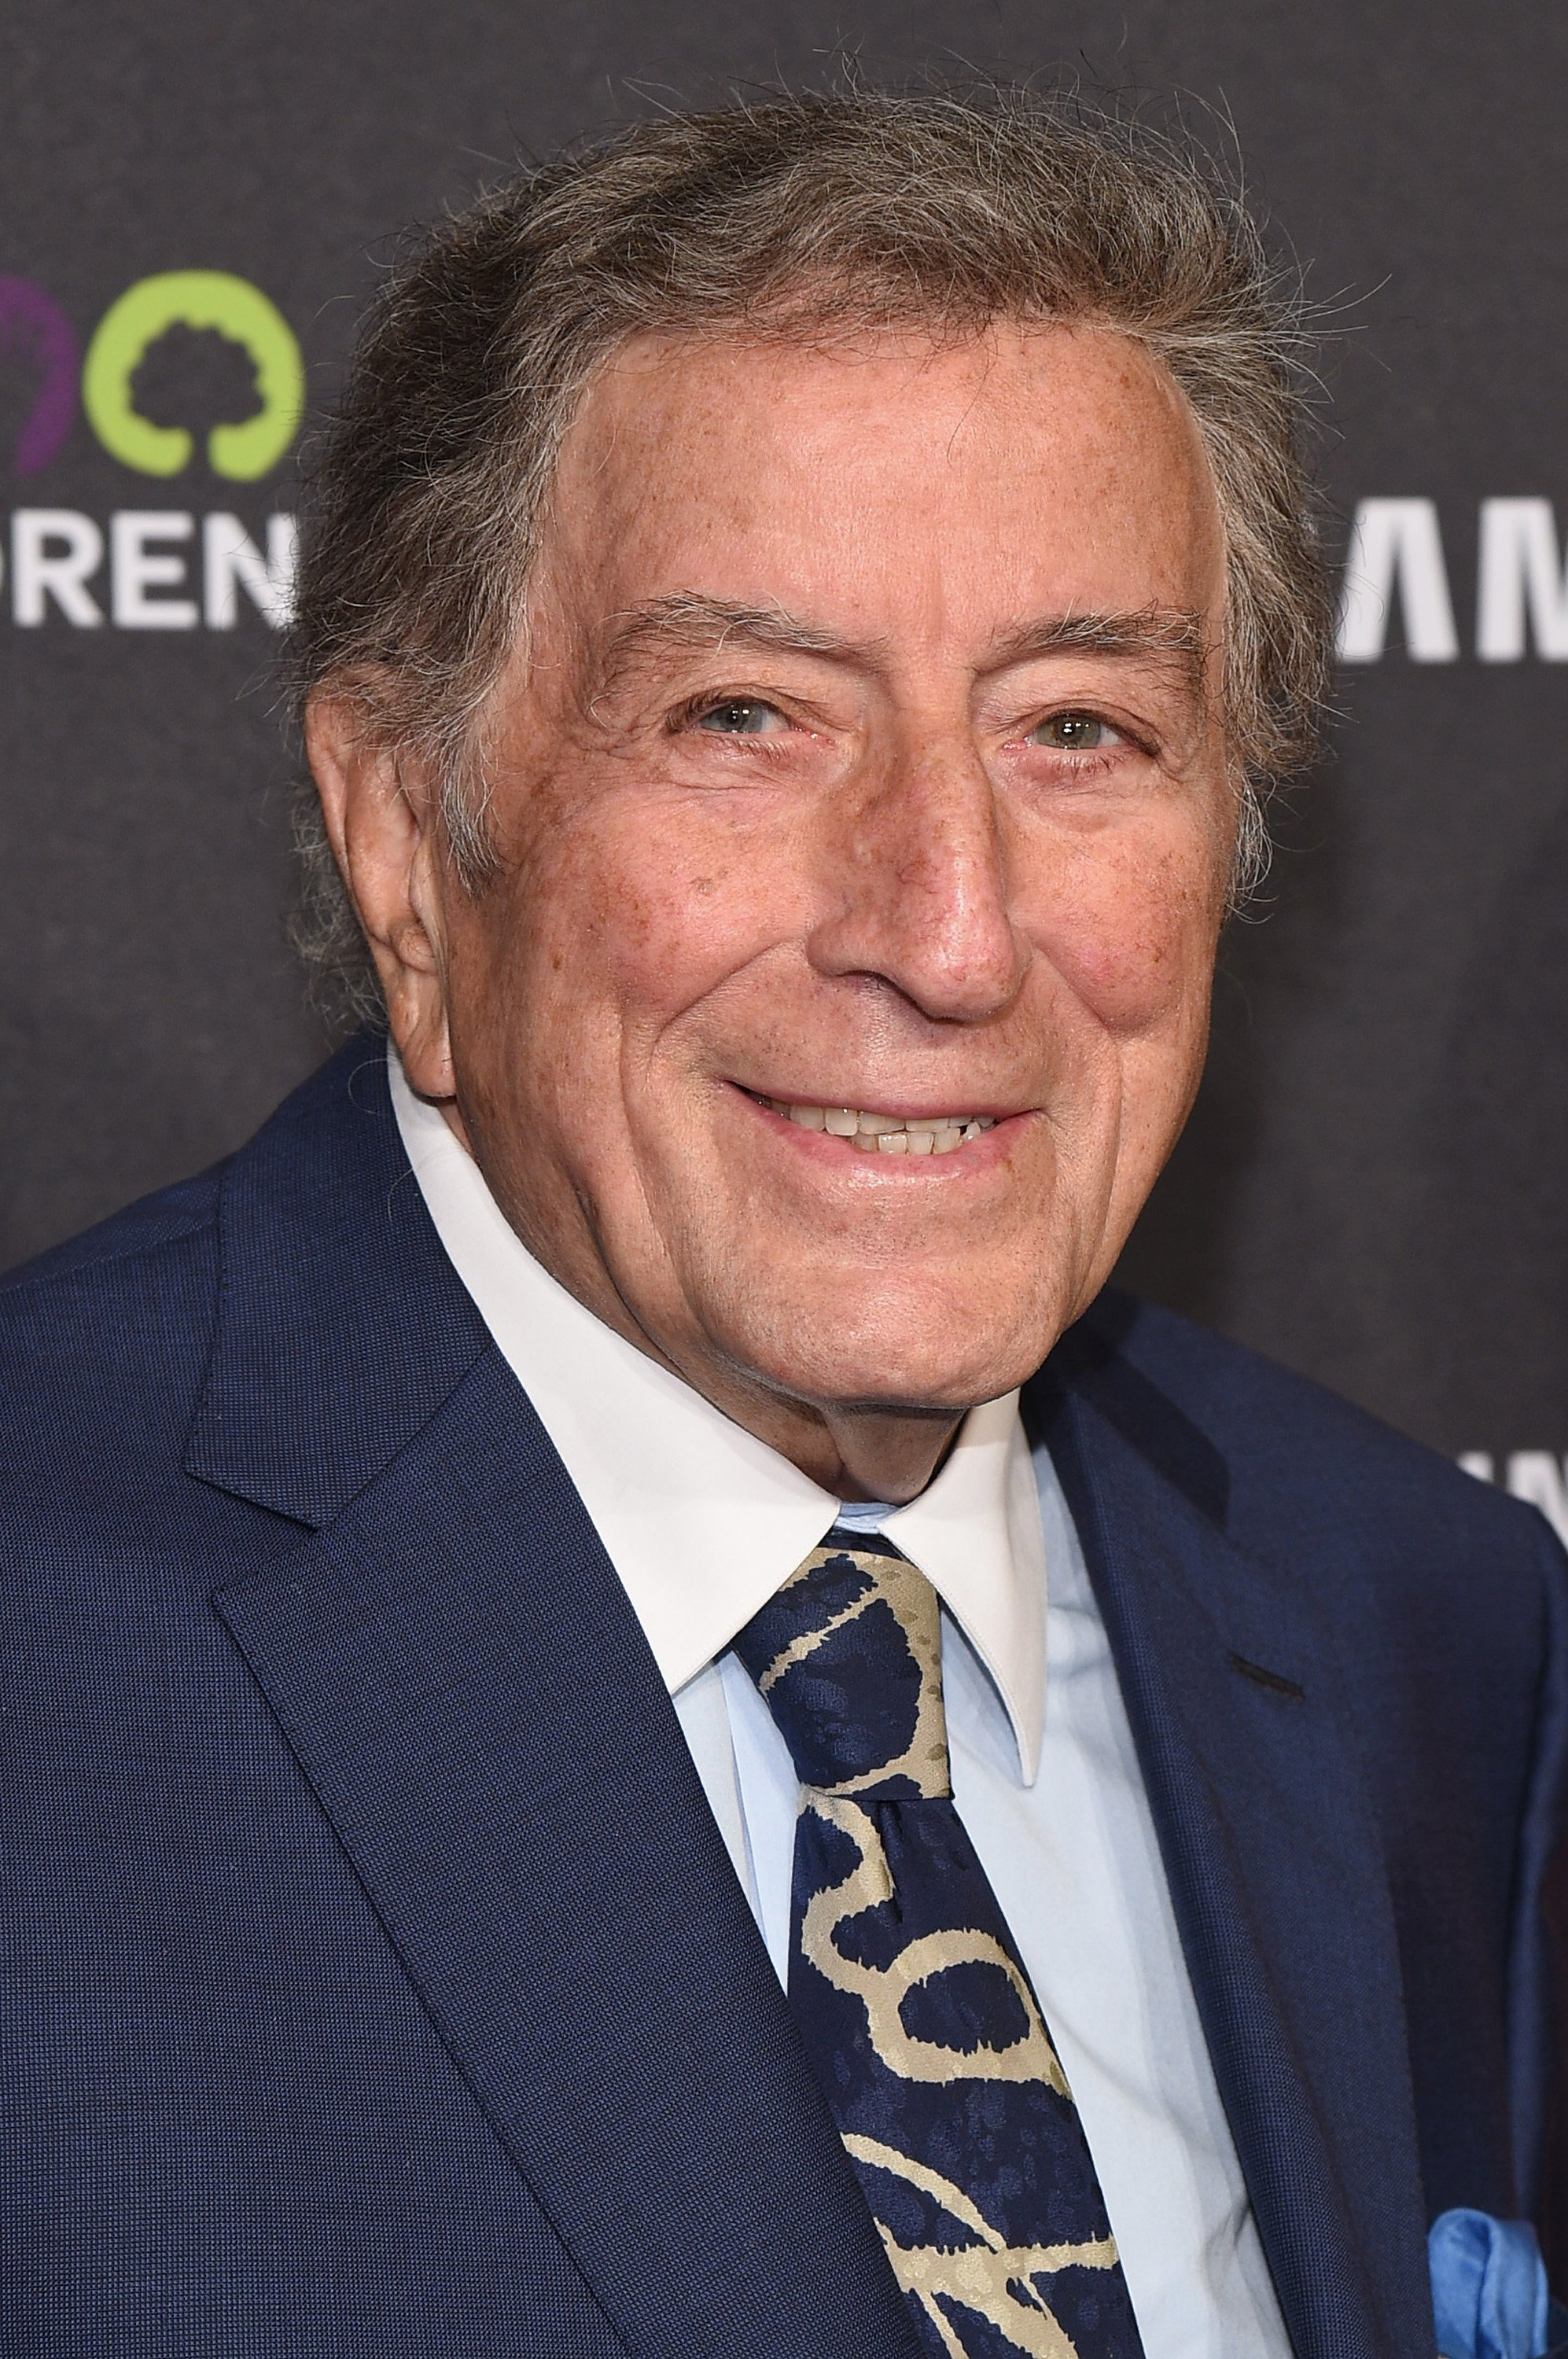 Tony Bennett attends the Samsung Hope for Children Gala 2015. | Source: Getty Images